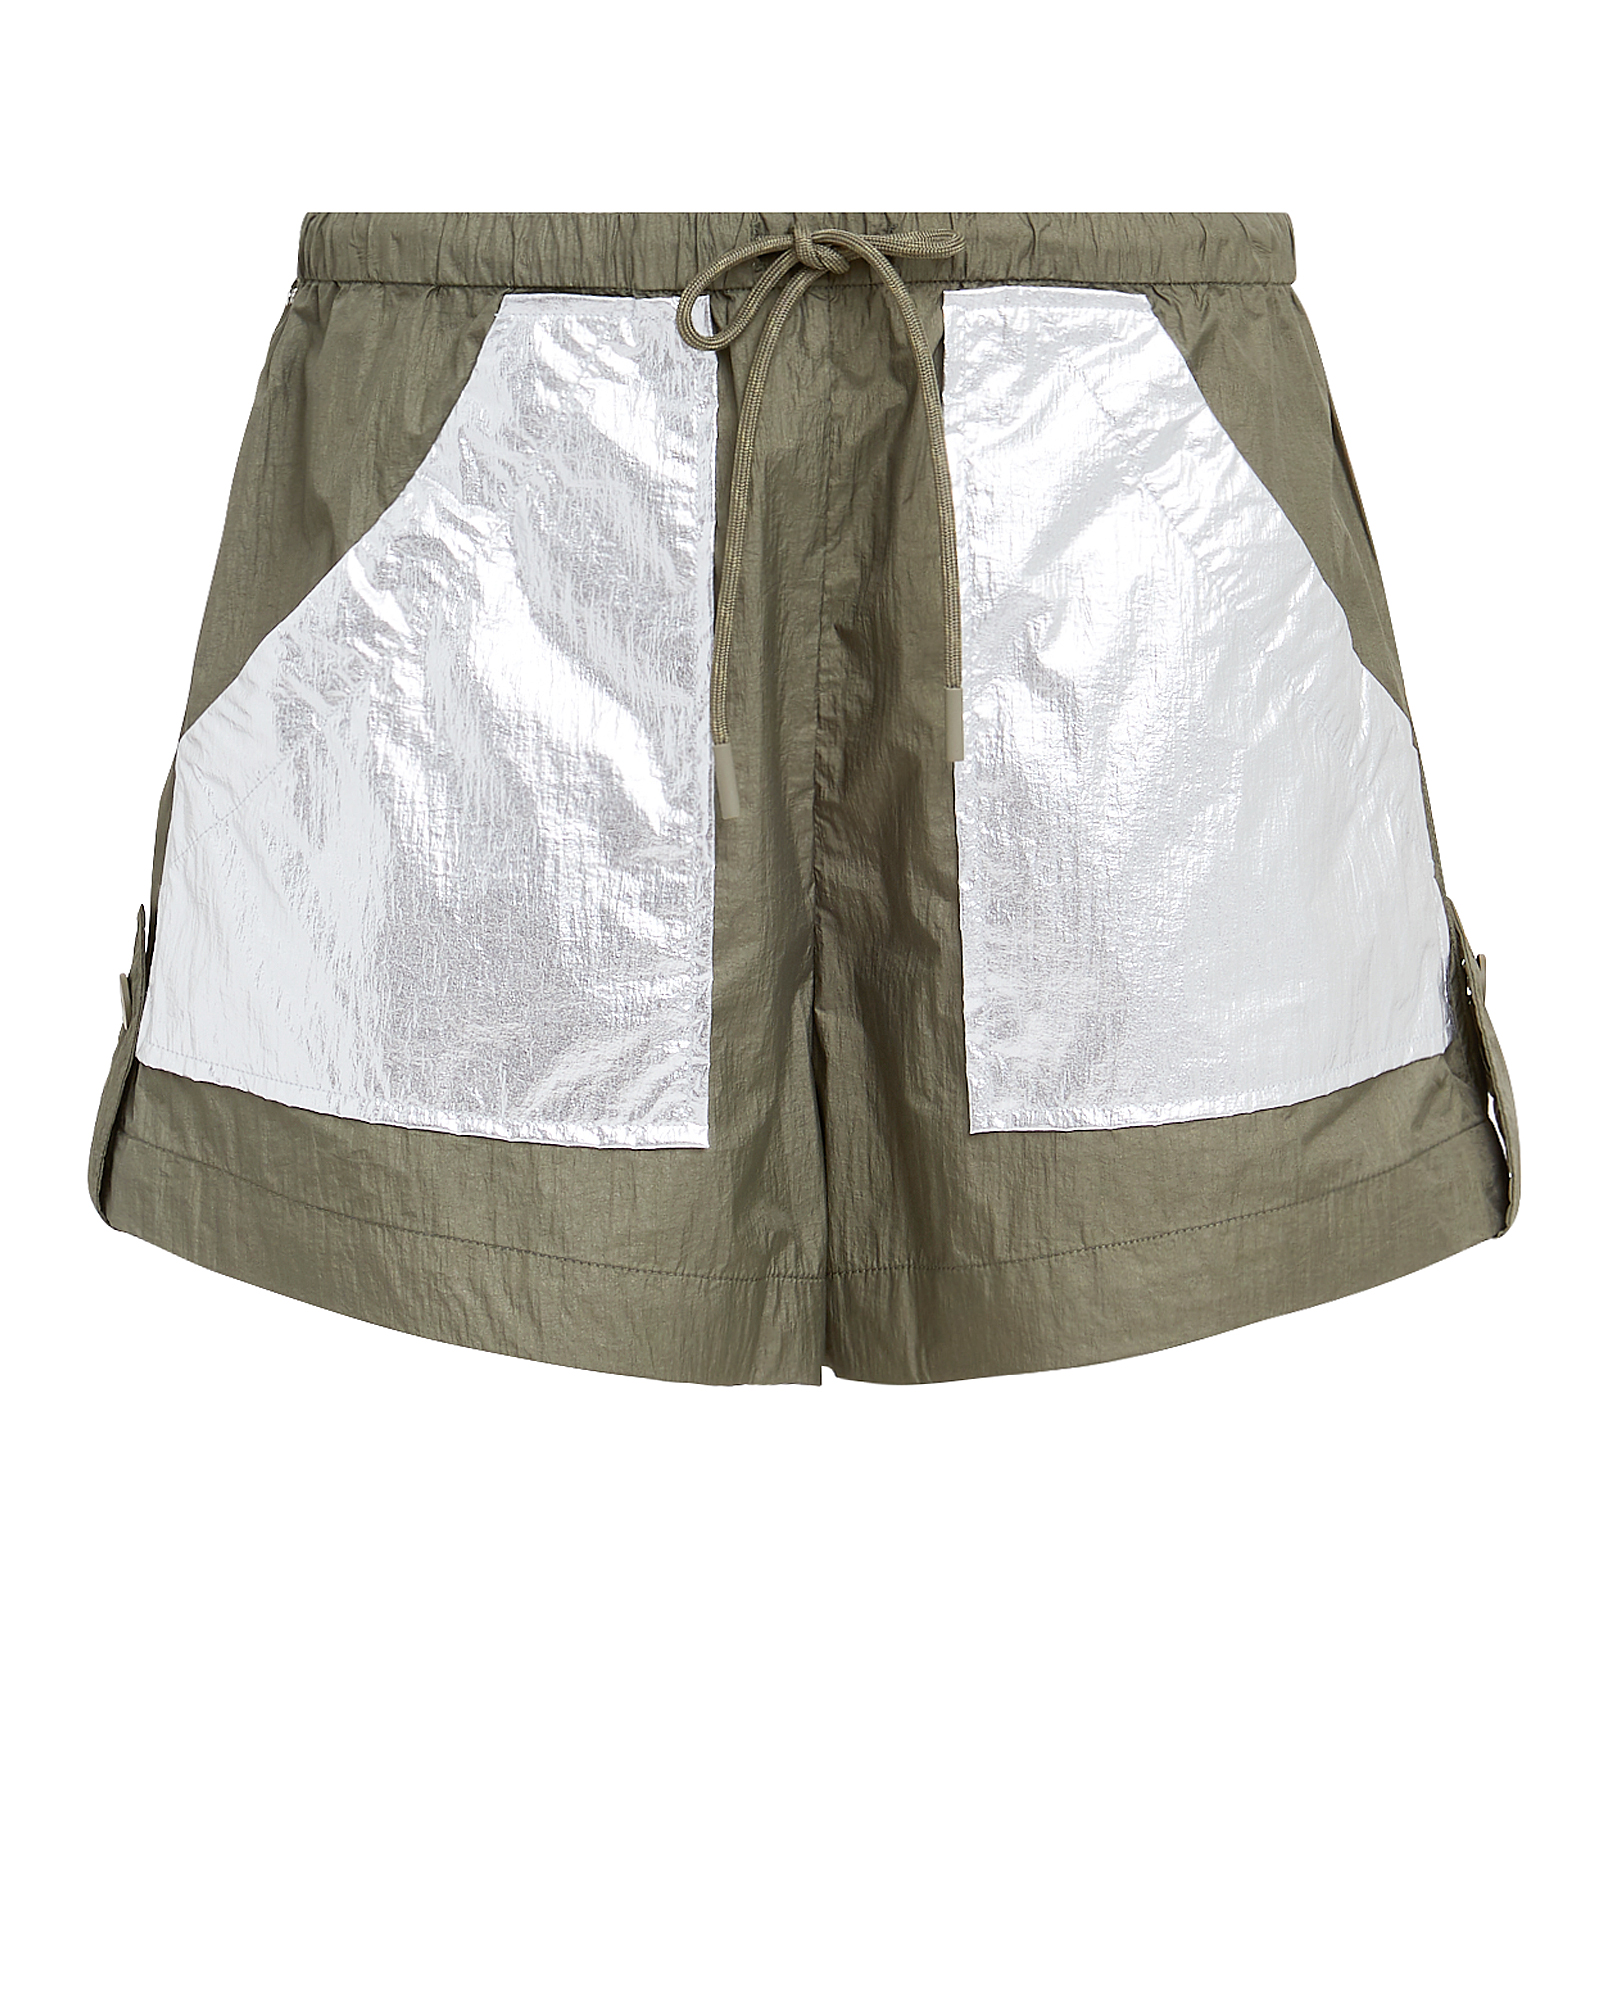 Ganni Shorts GANNI MICA COLORBLOCKED TECH SHORTS  OLIVE/ARMY 36